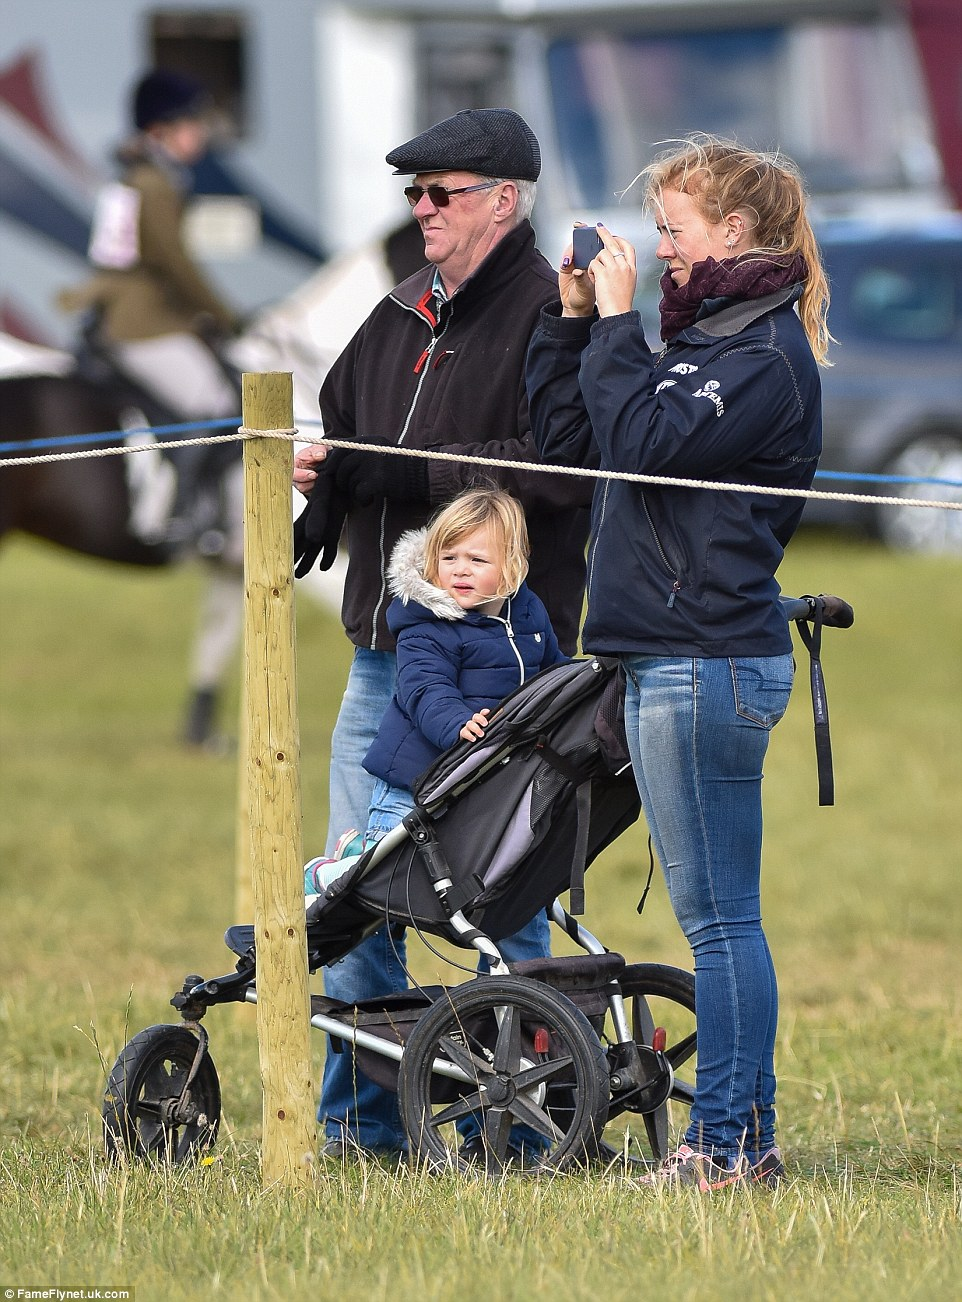 Still in her pushchair, Mia's attention is caught by the goings on at the horse trials, which is one of the fixtures on the British eventing calendar